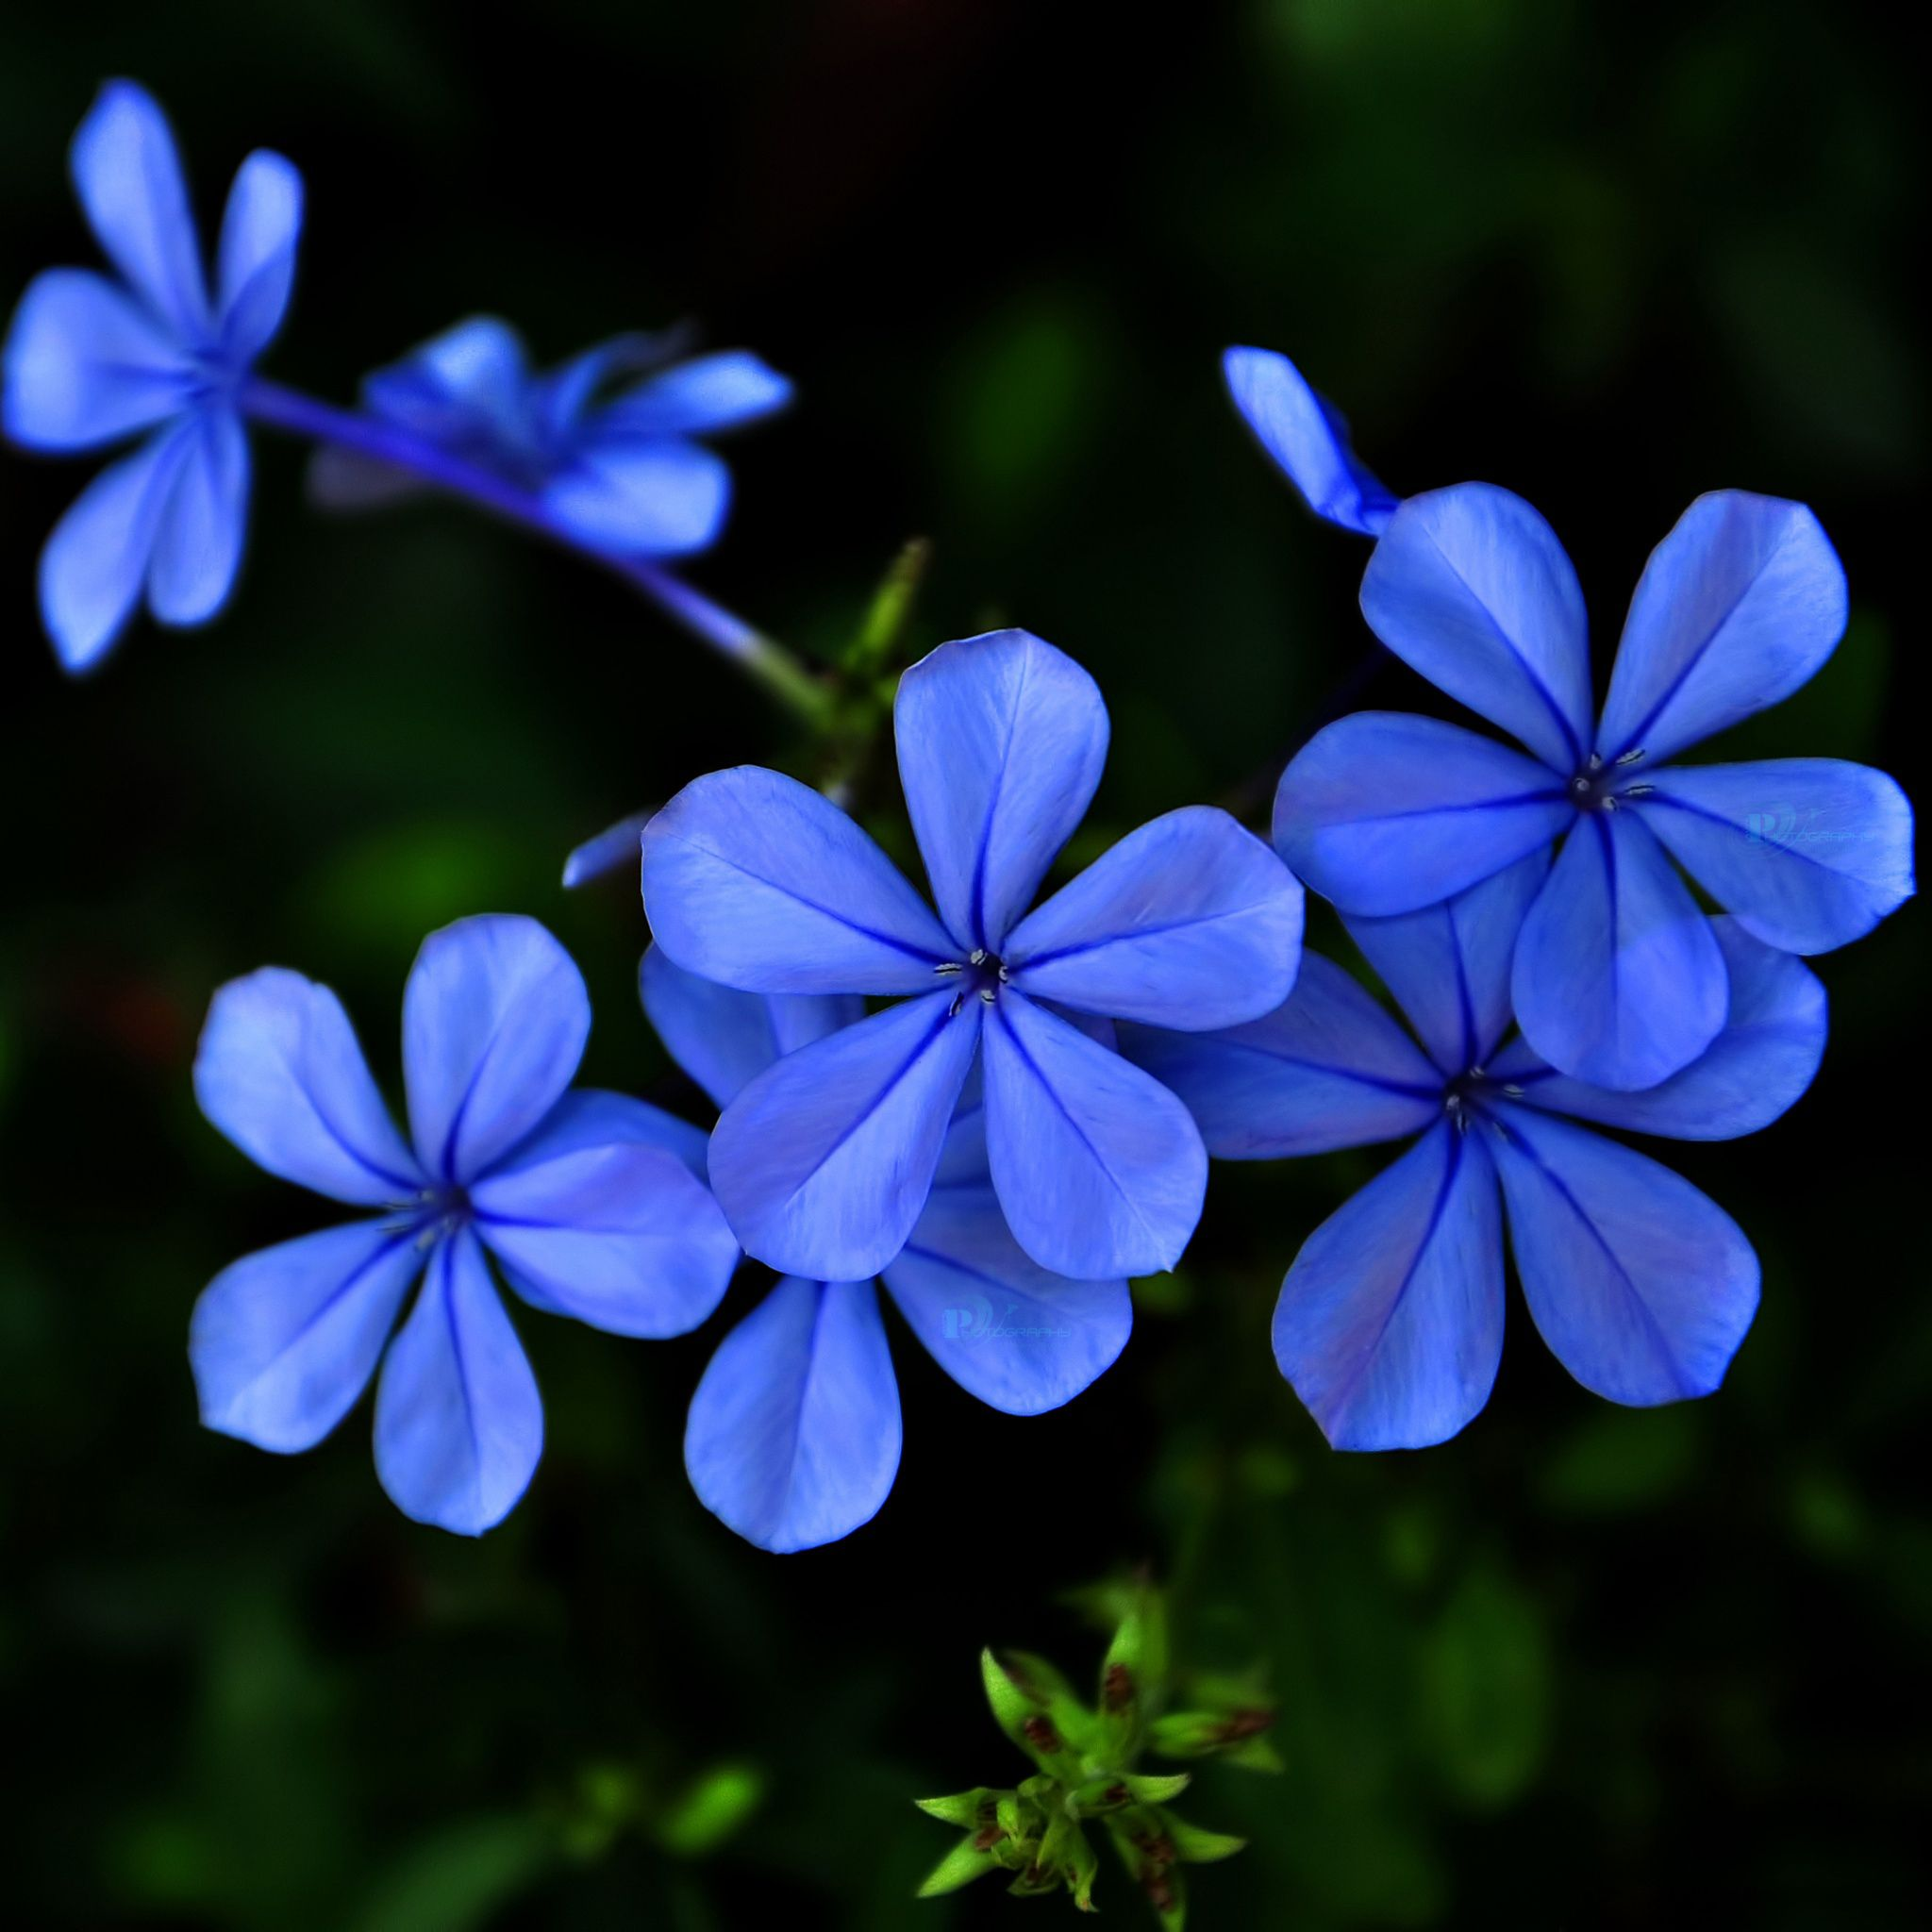 Blue Flowers Ipad Wallpaper Hd